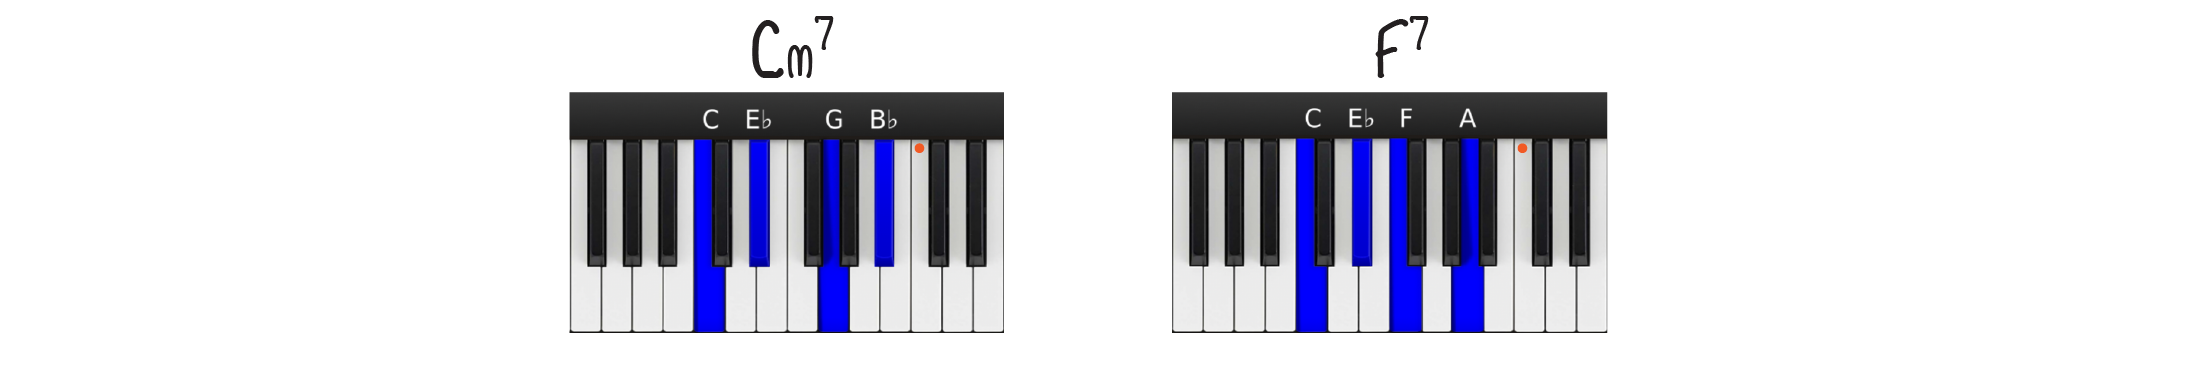 Cm7 and F7 Chord Diagrams